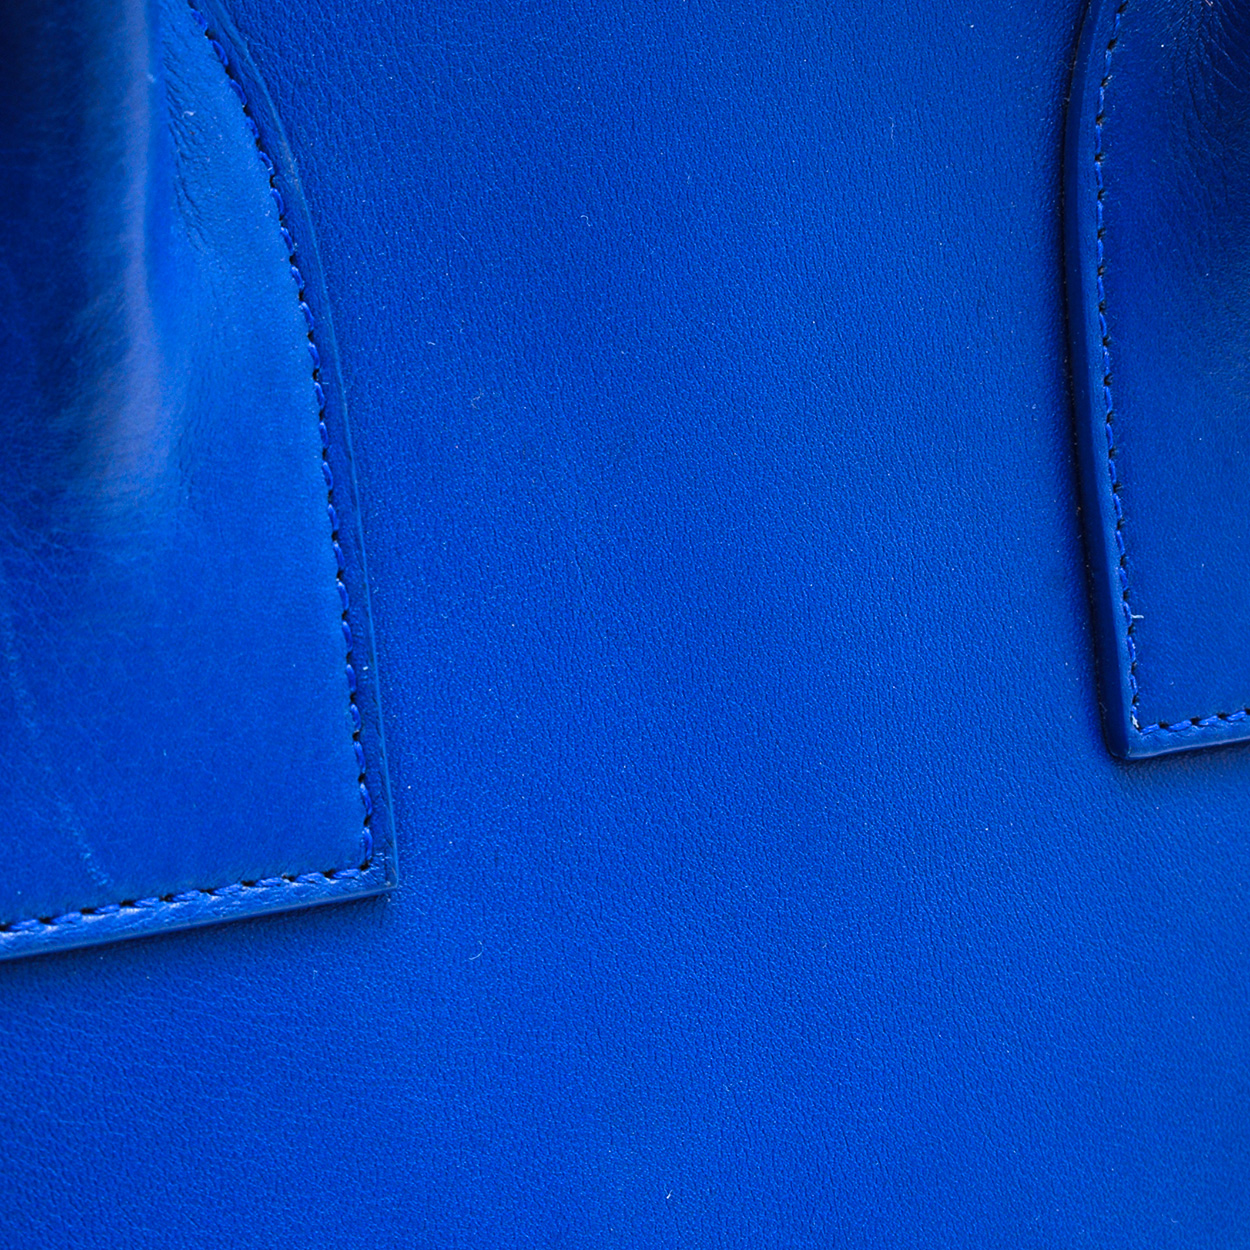 Yves Saint Laurent - Royal Blue Calfskin Leather Classic Medium Sac De Jour Bag